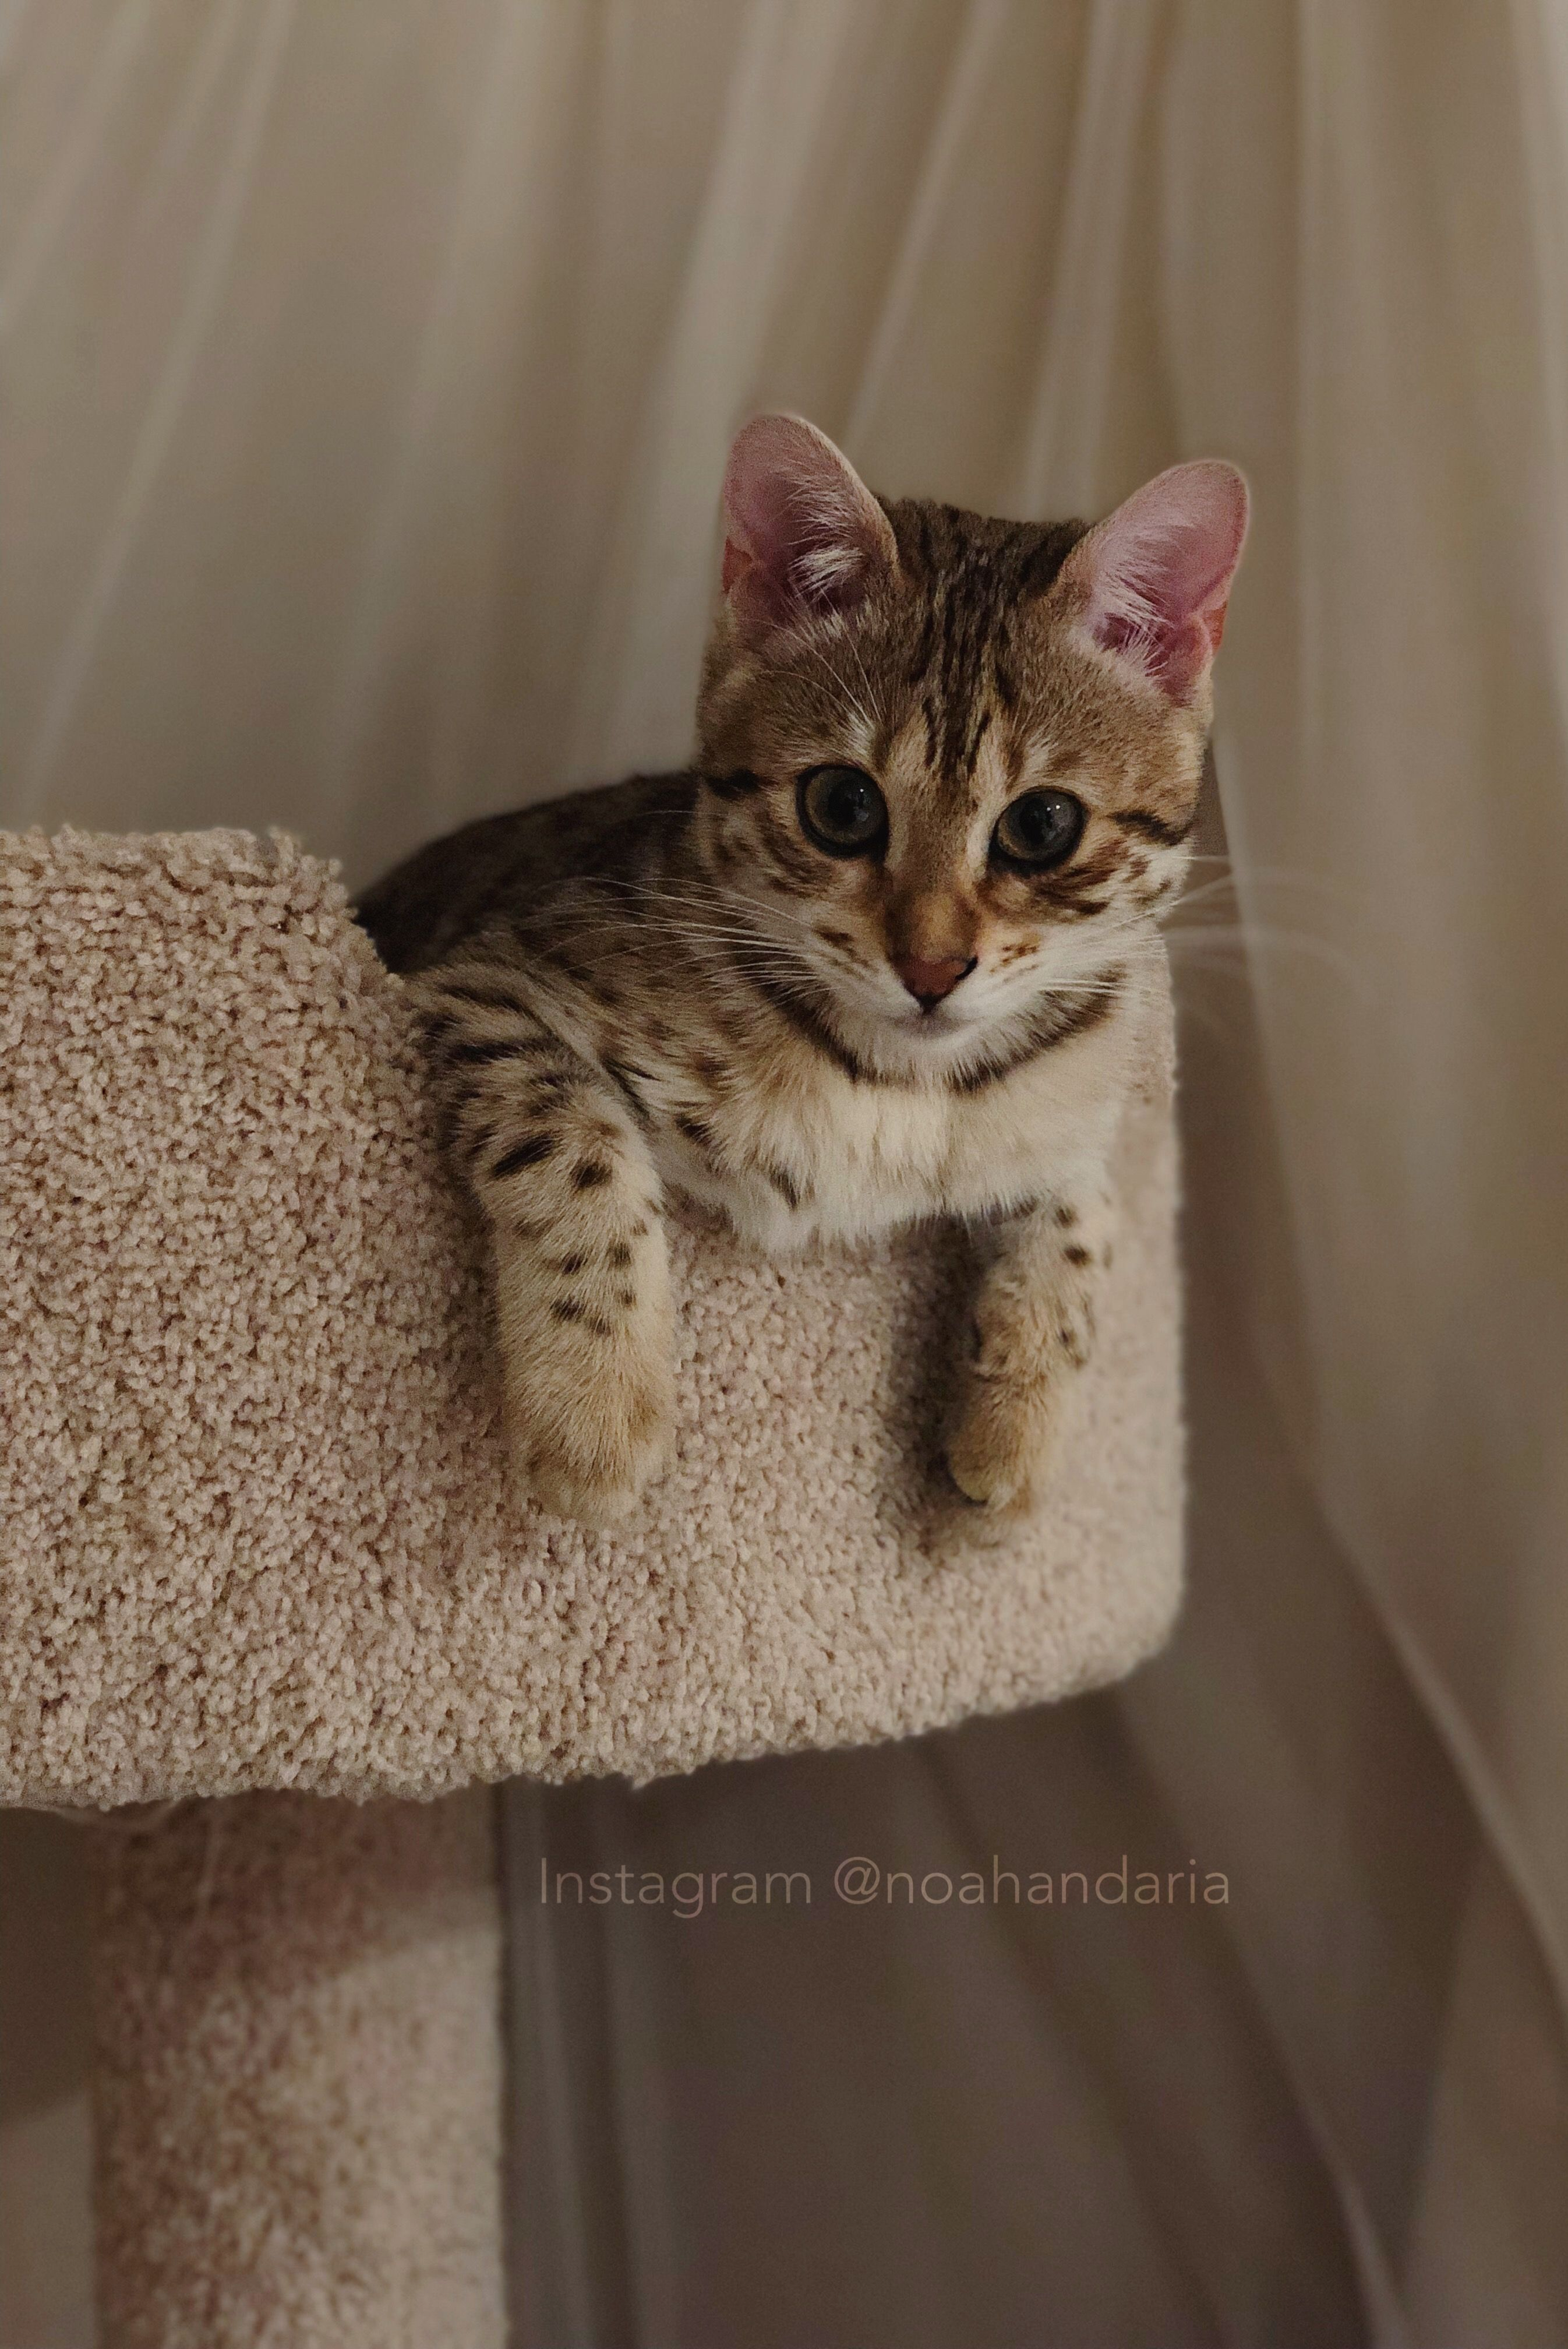 Hi I M Aria I M A Rosette Spotted Bengal You Can Follow My Brother And Me On Instagram Noahandaria Ps My Breeder Parents A Bengal Cat Cats Bengal Kitten